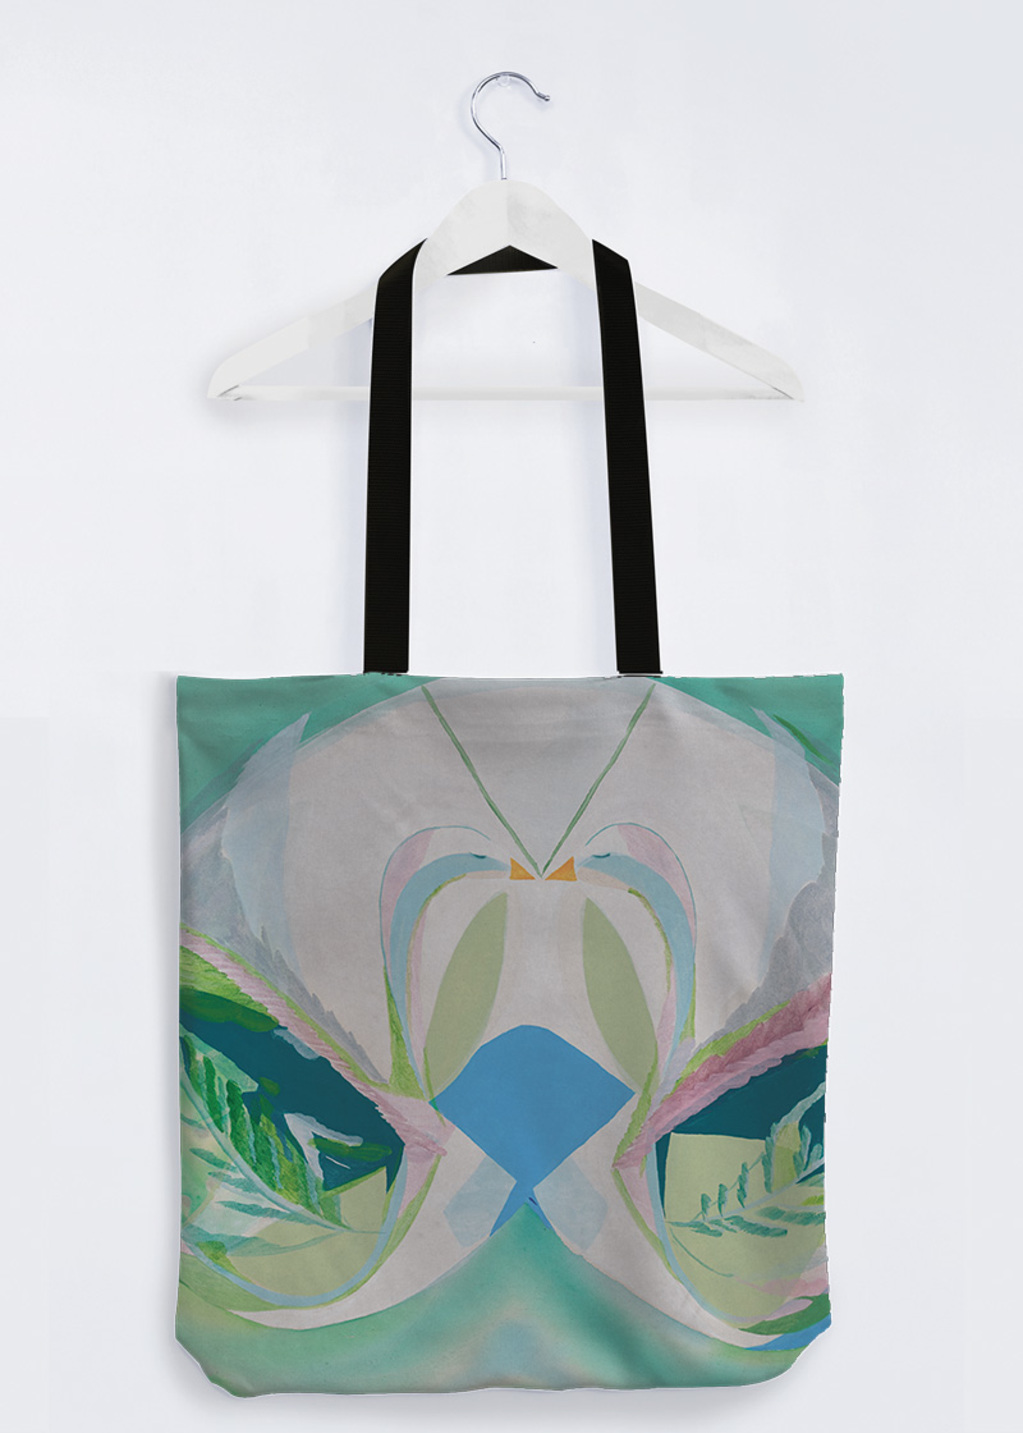 Picture of Crystal Vision PP Reuben's Tote